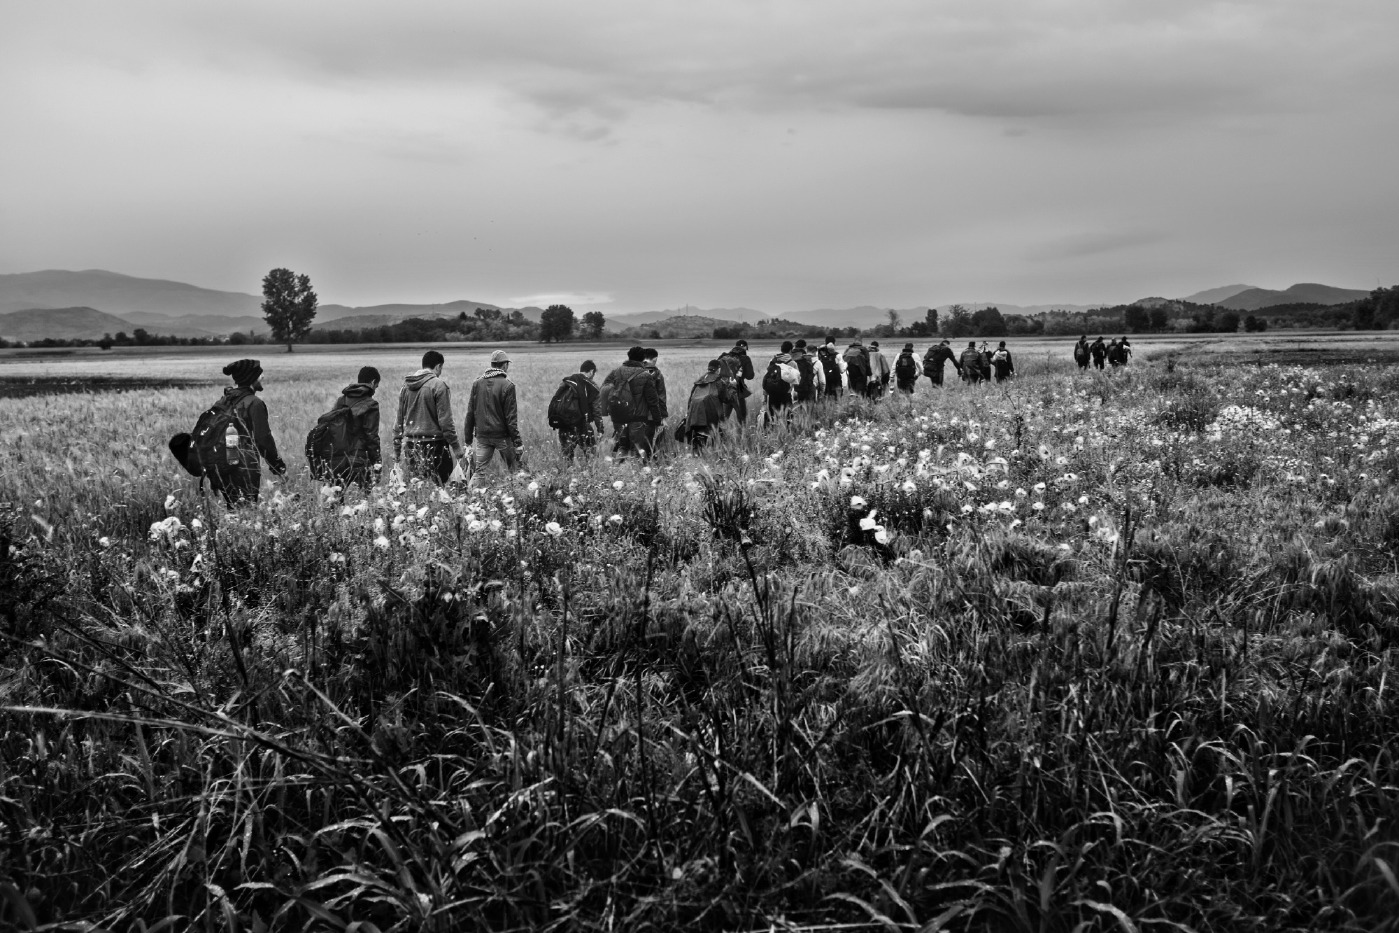 A column of Syrian asylum seekers on the way through cultivated fields about a kilometer from the border between Greece and FYROM. Evzoni, Greece 2015. © Matteo Bastianelli